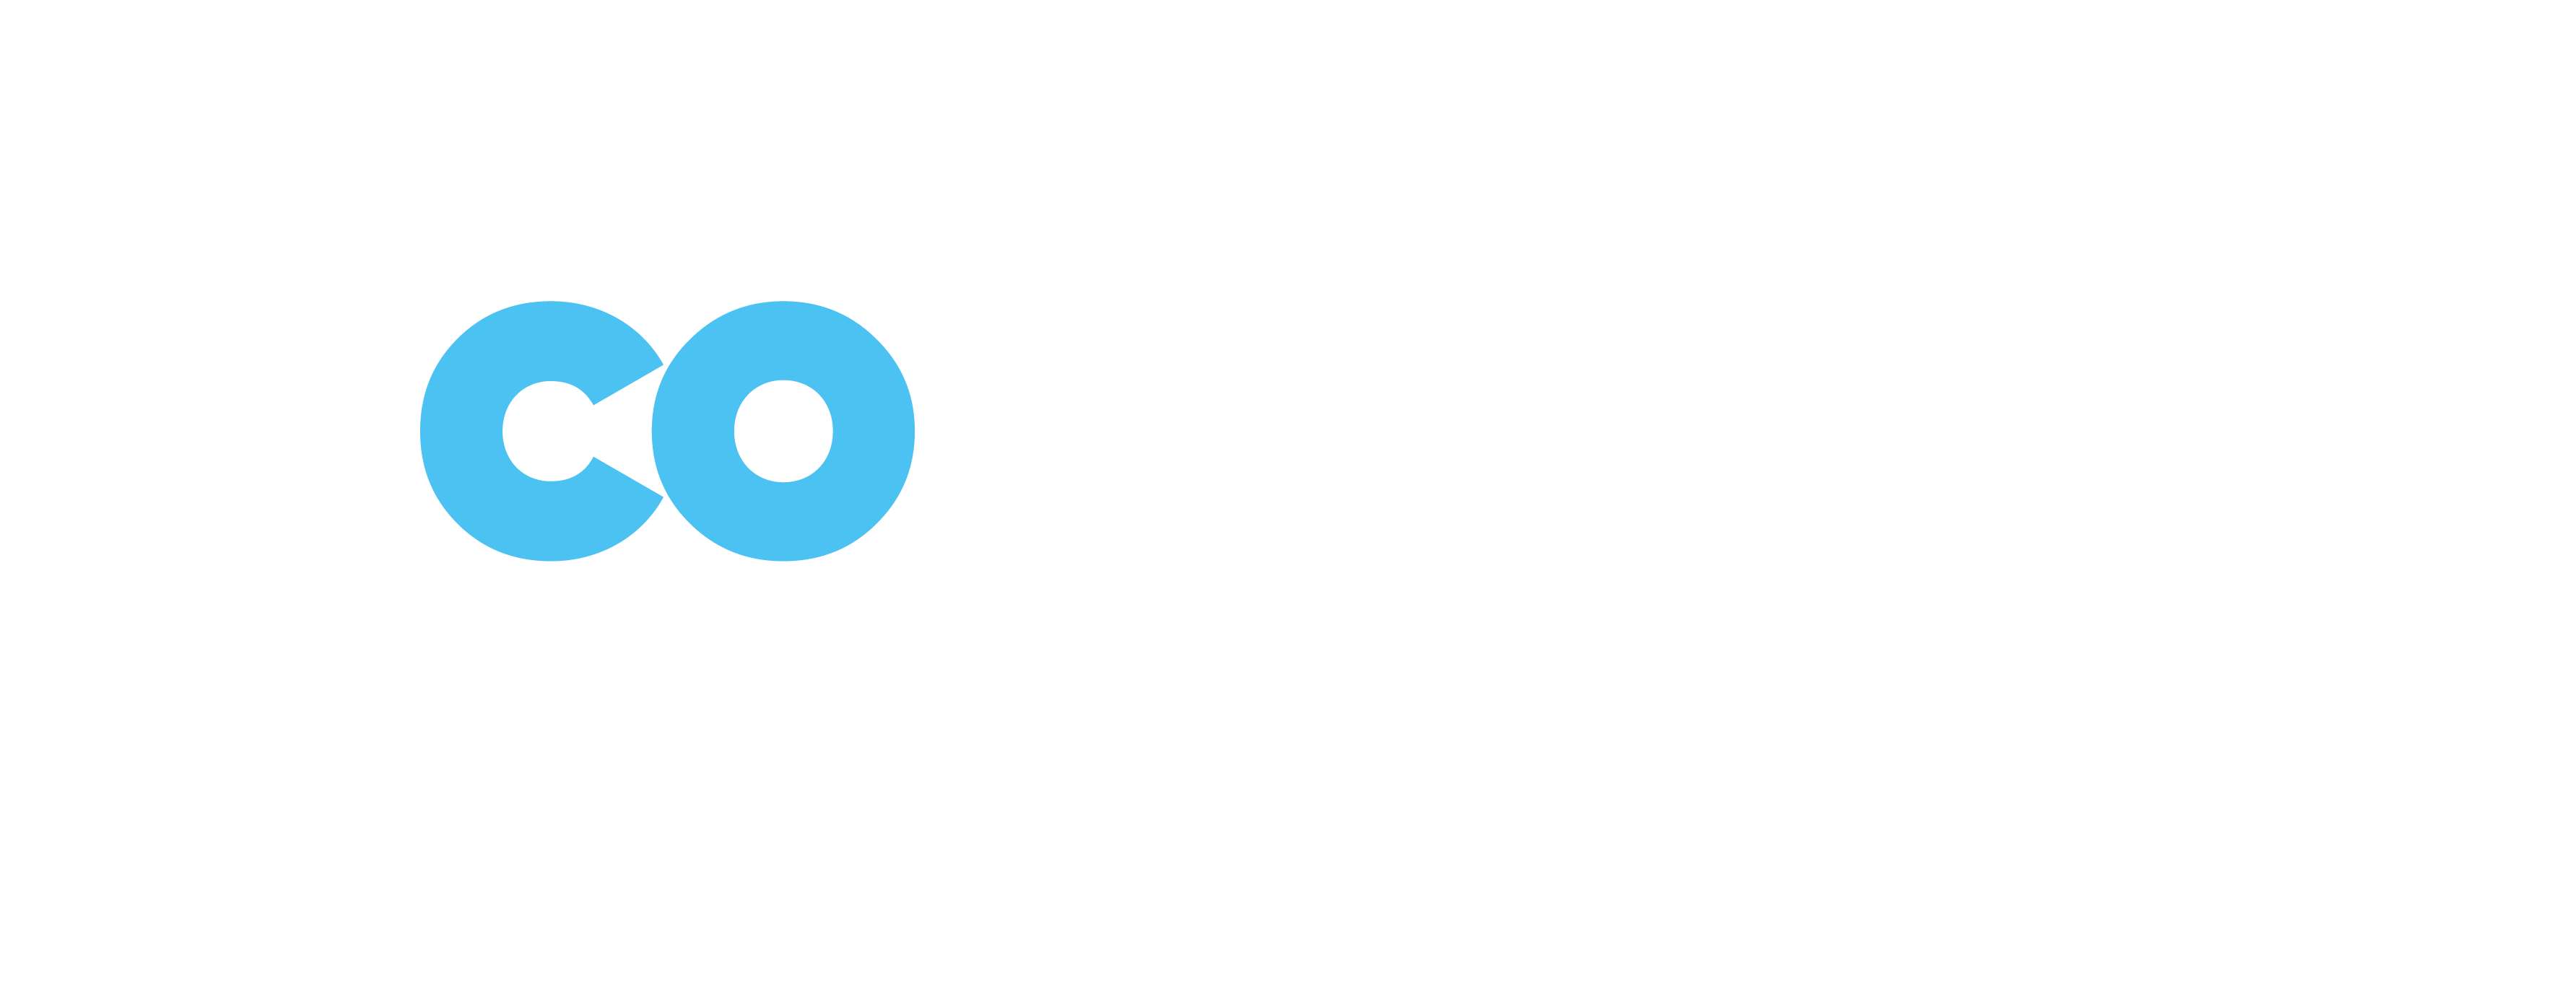 Access Courtage